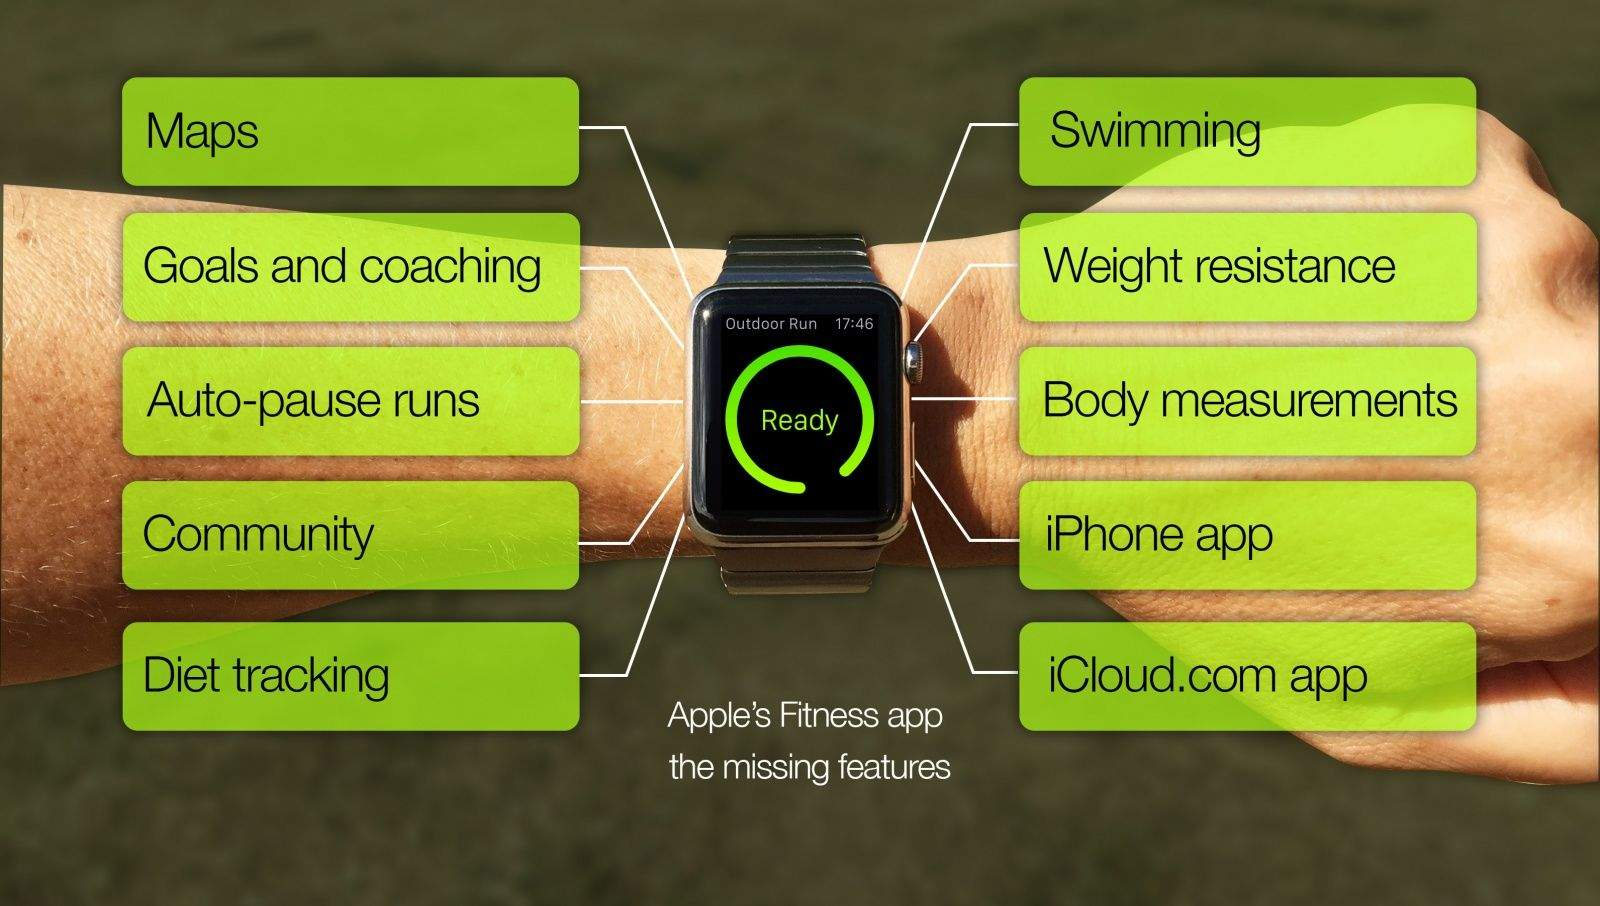 How could Apple improve their fitness offering?